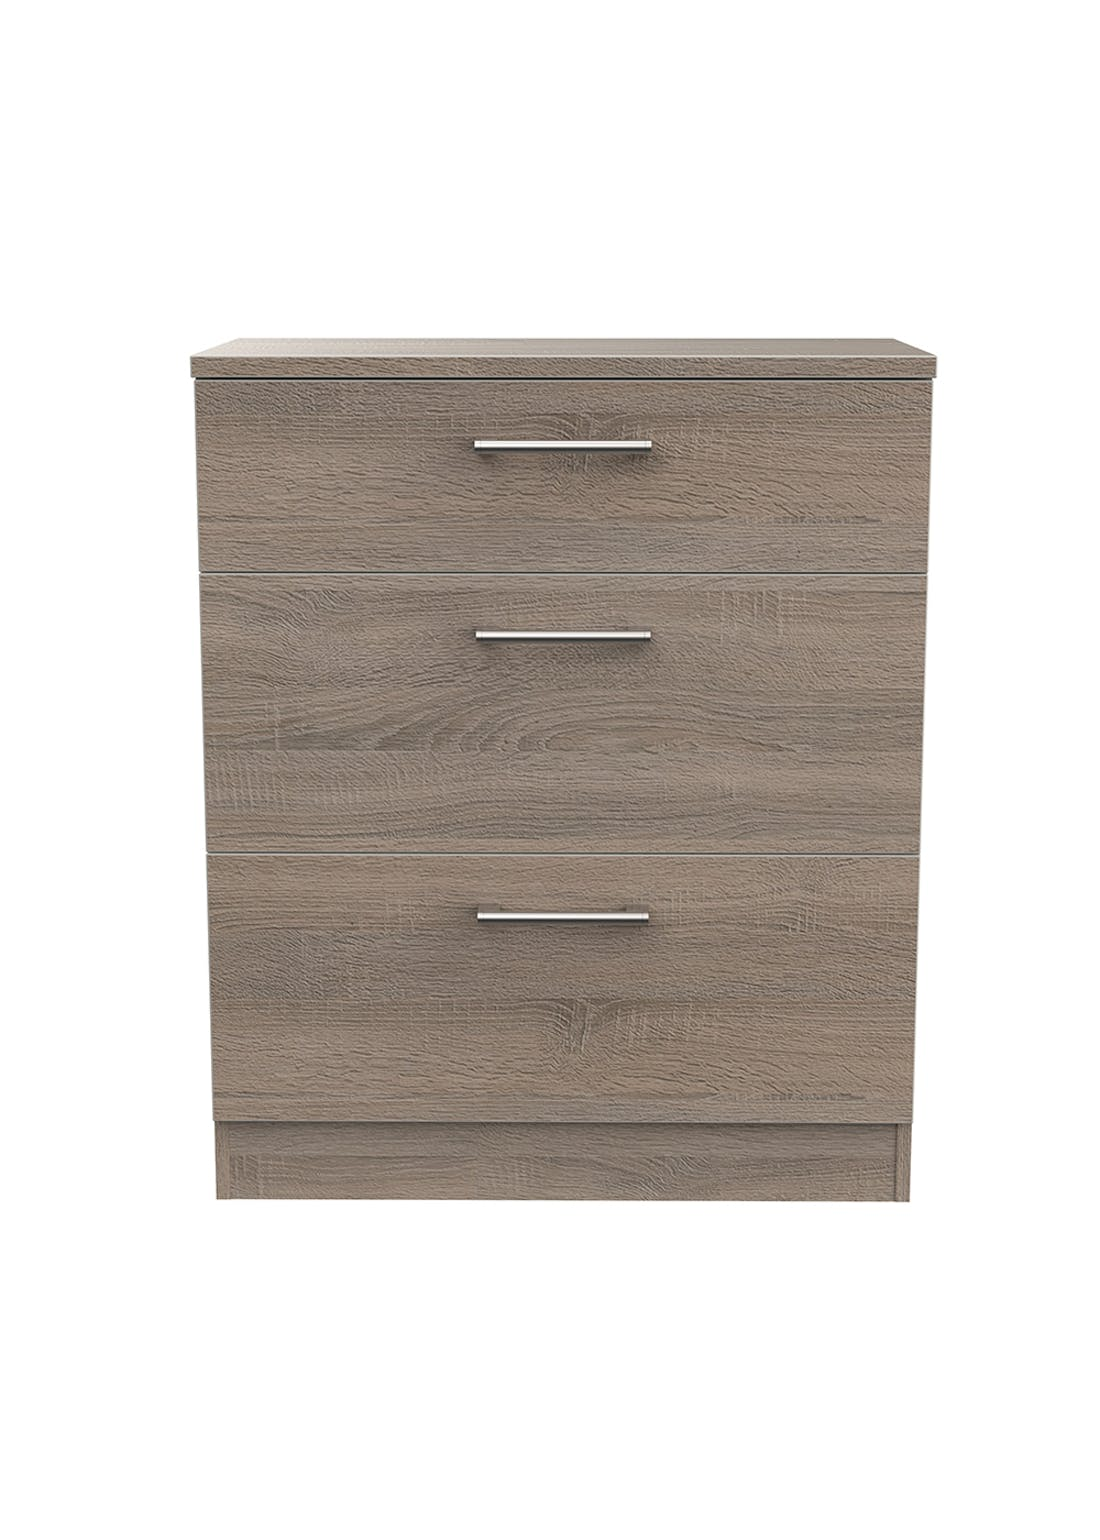 Swift Bari 3 Drawer Deep Chest (88.5cm x 76.5cm x 41.5cm)